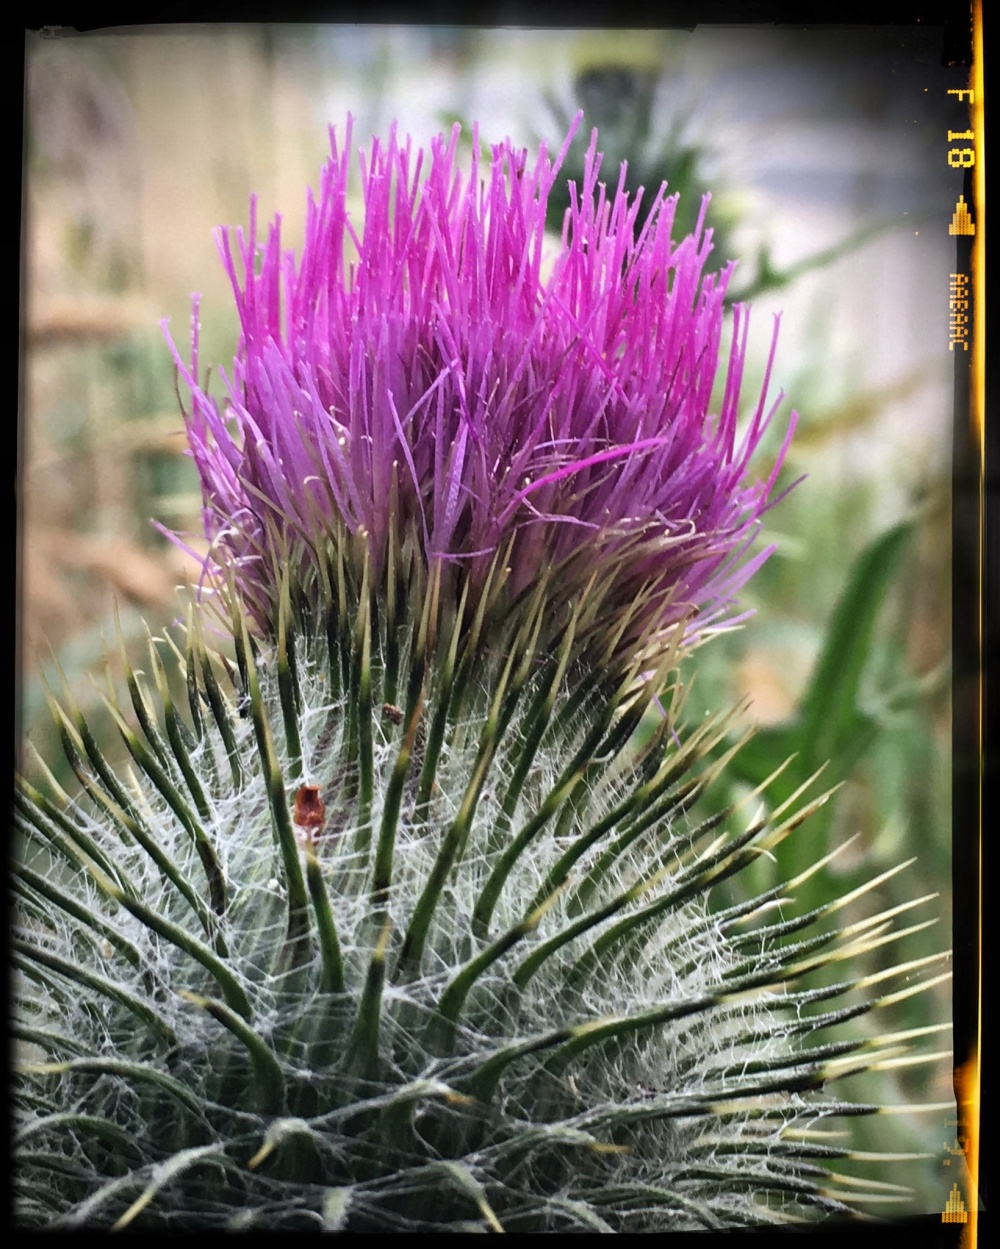 Thistle in closeup